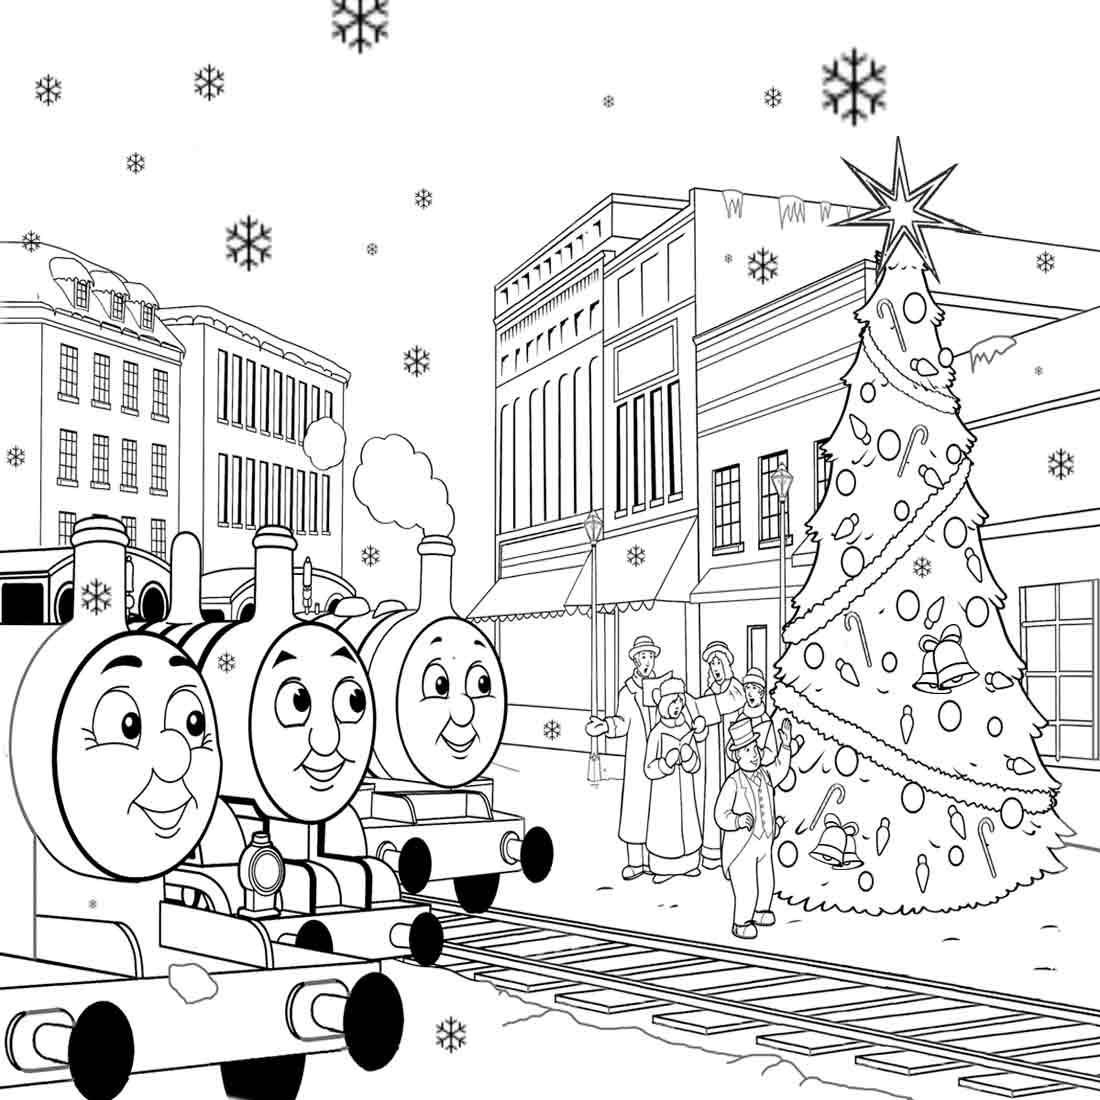 Kids christmas coloring and activity sheets - Thomas The Train Christmas Coloring Pages For Kids Thomas The